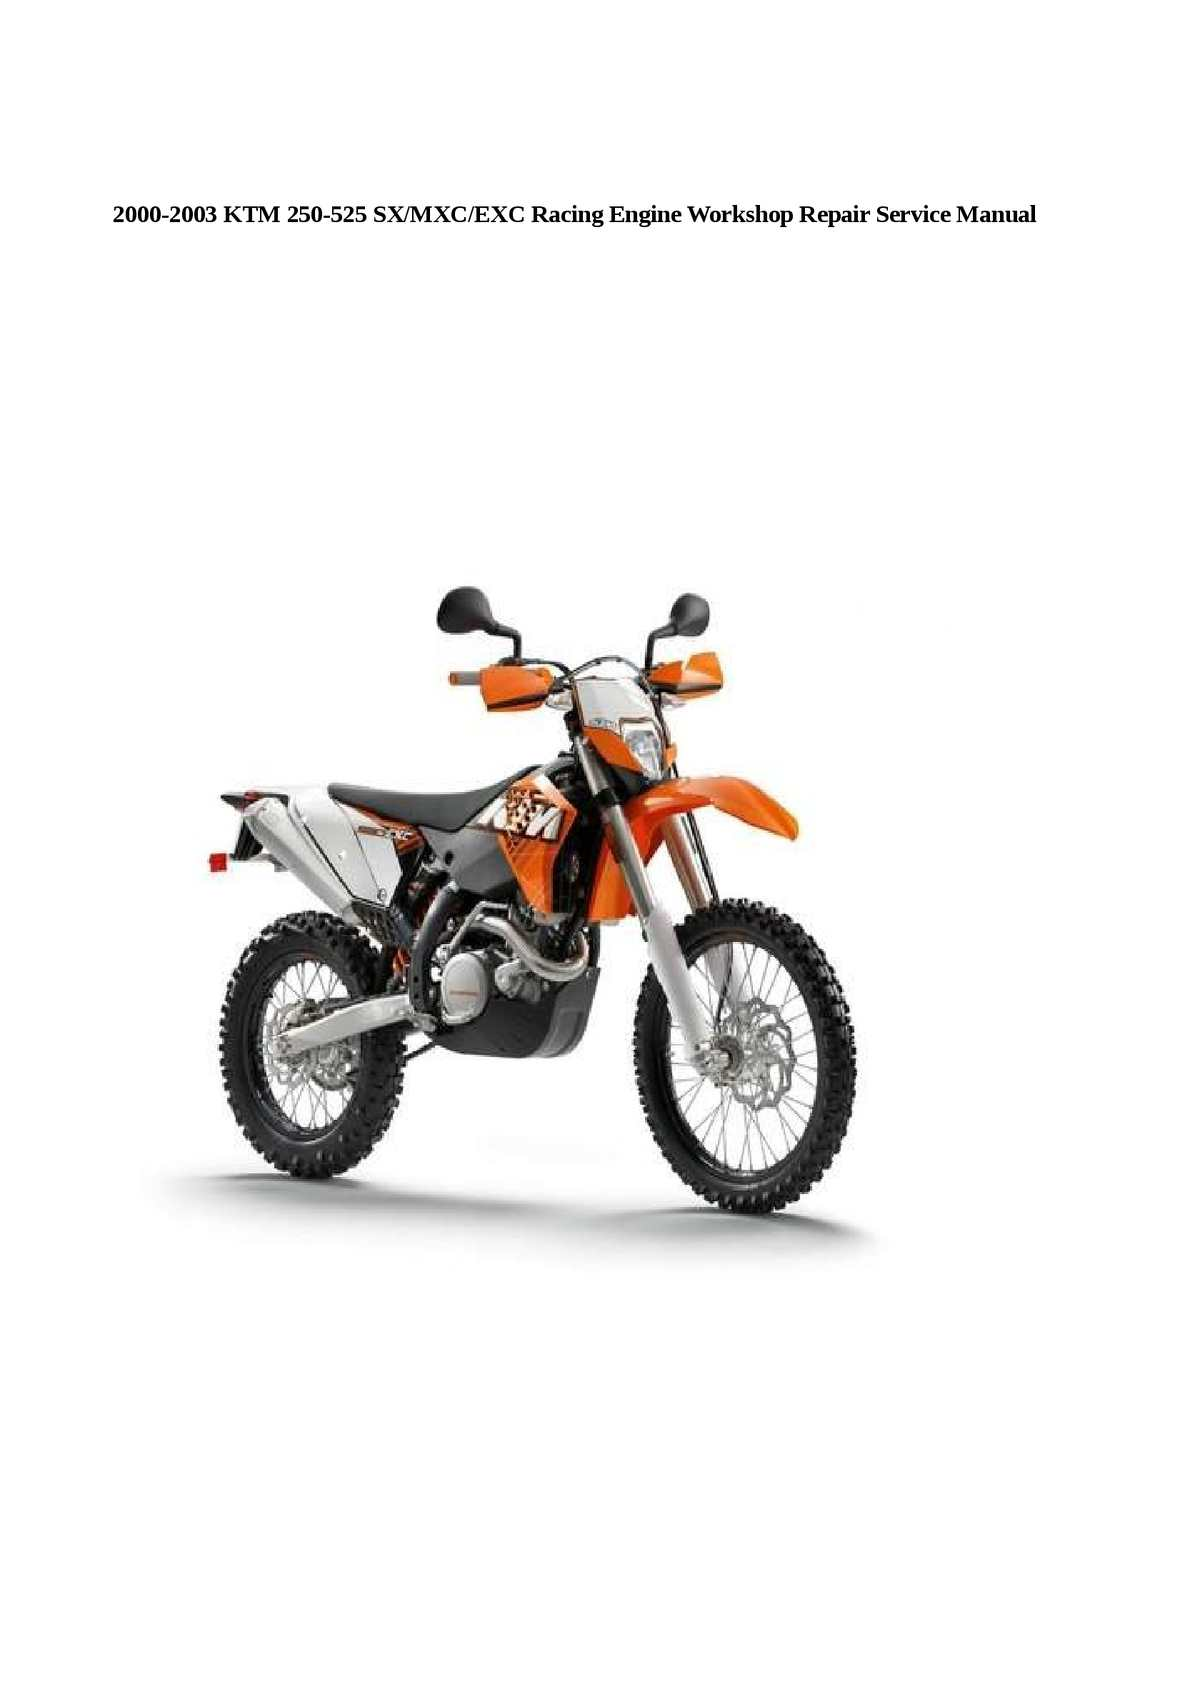 Ktm 525 Workshop Manual